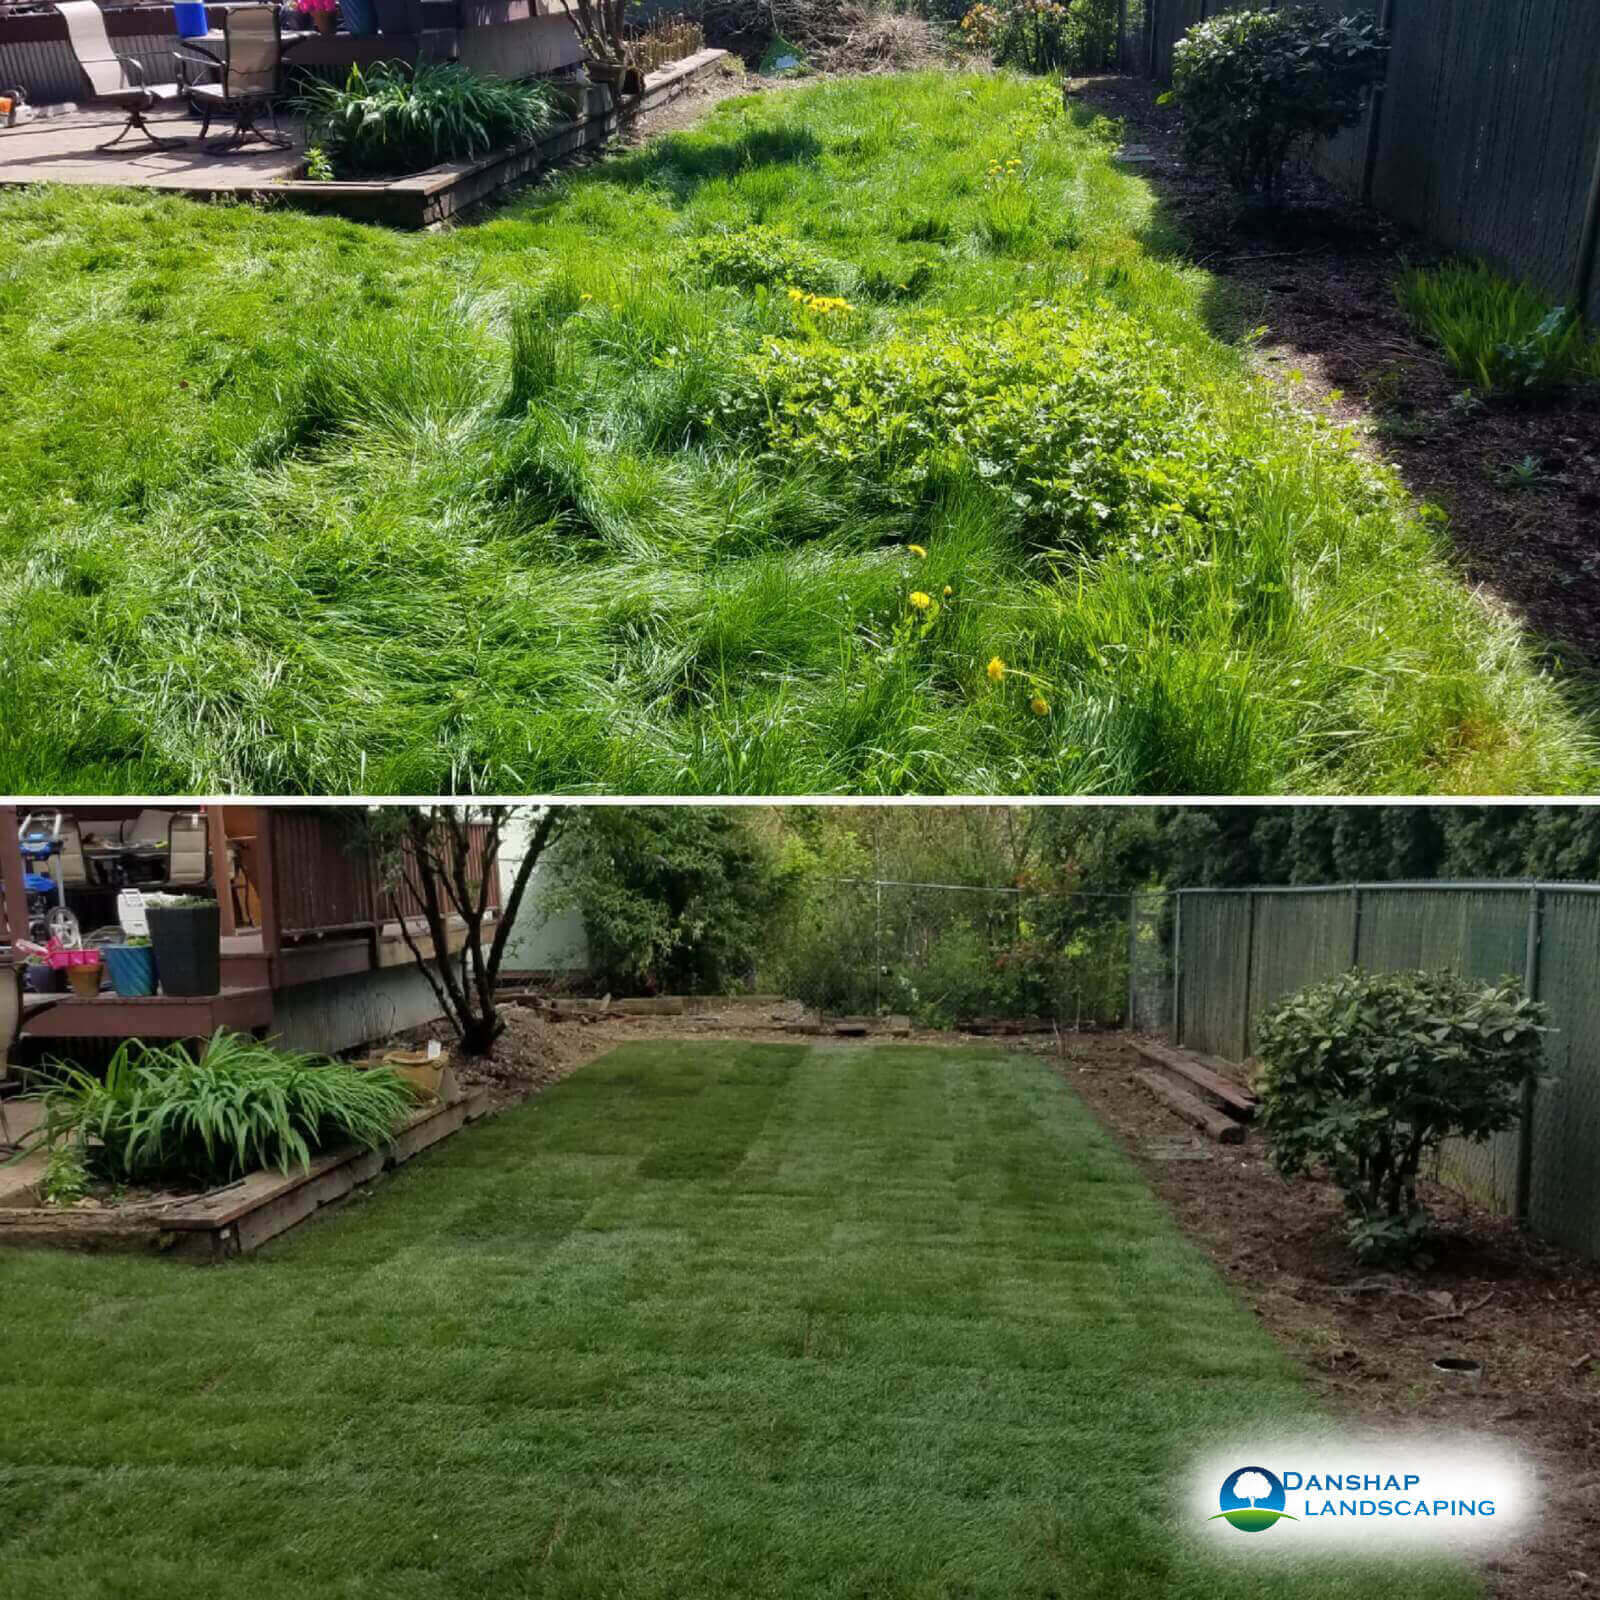 Sod-Replacement-Danshaplandscape-39